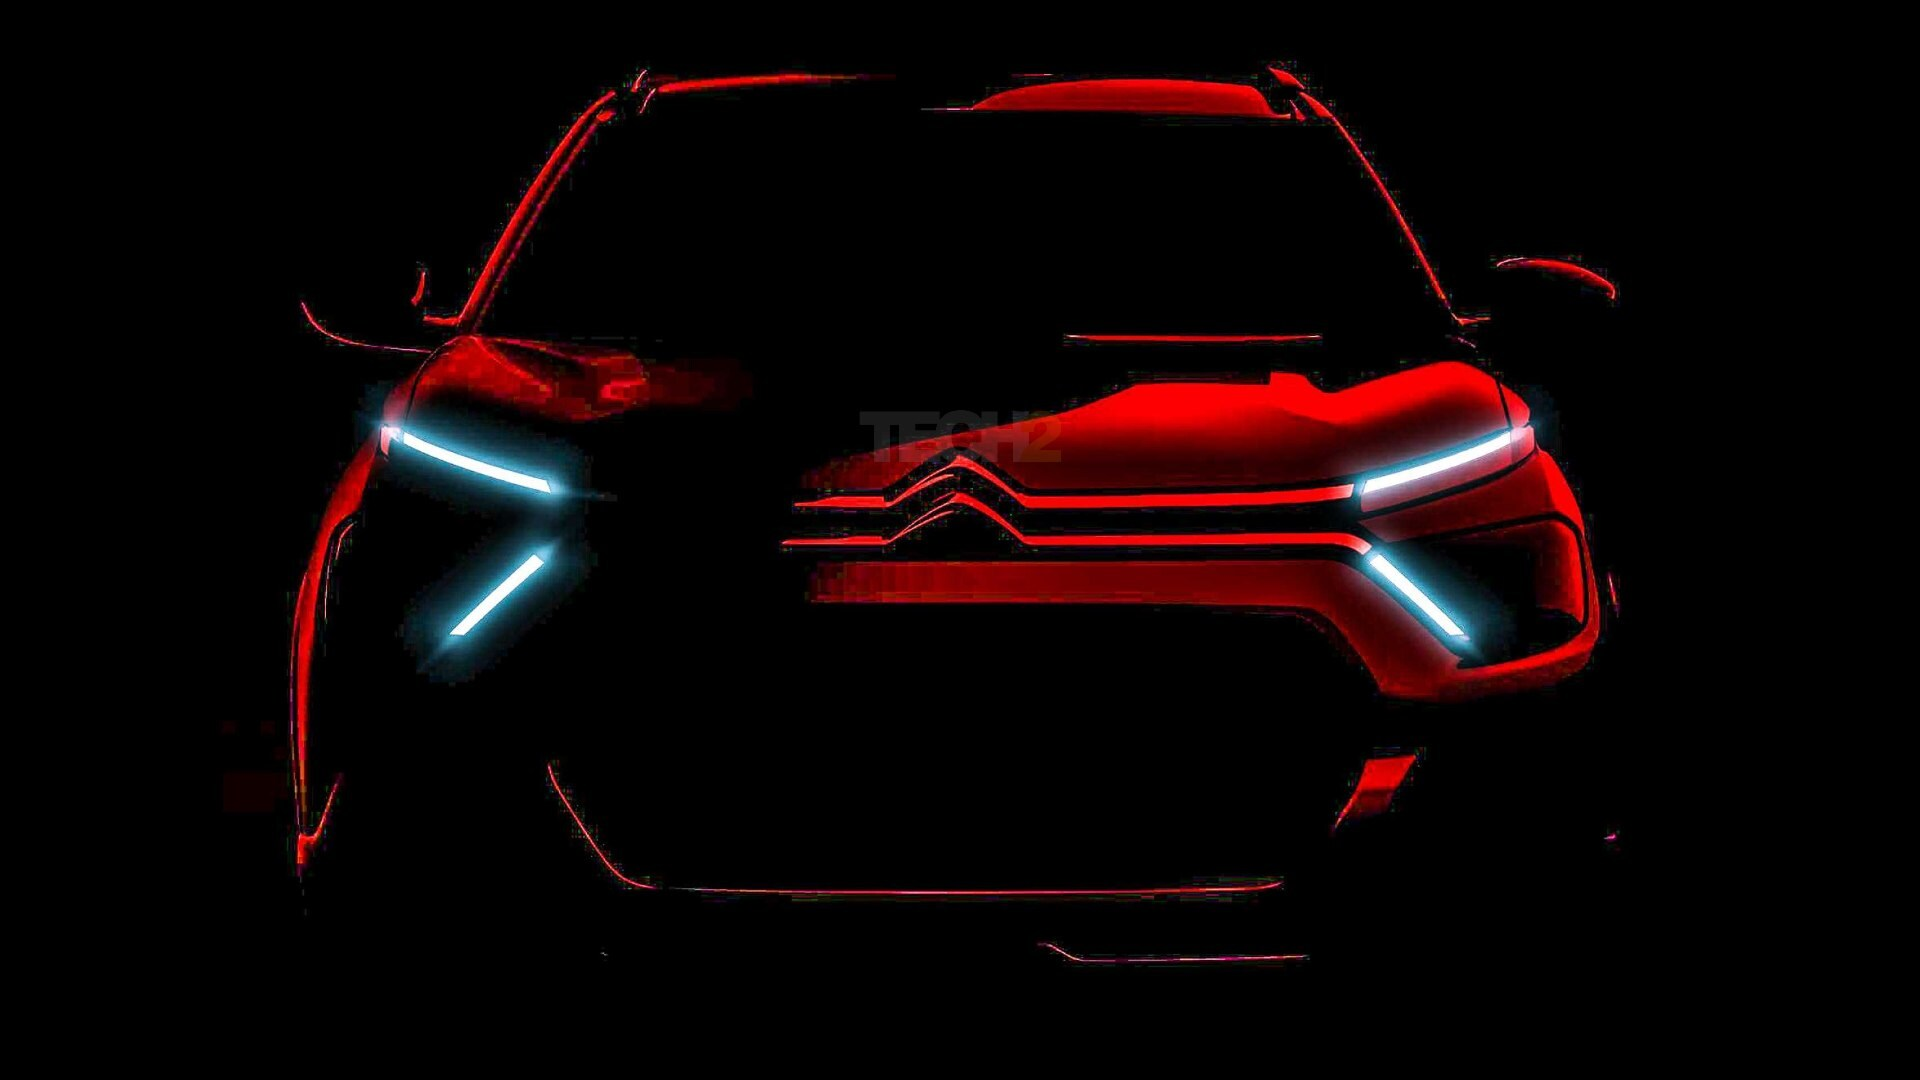 Made-in-India Citroen C3 compact SUV teased ahead of world premiere on 16 September- Technology News, FP